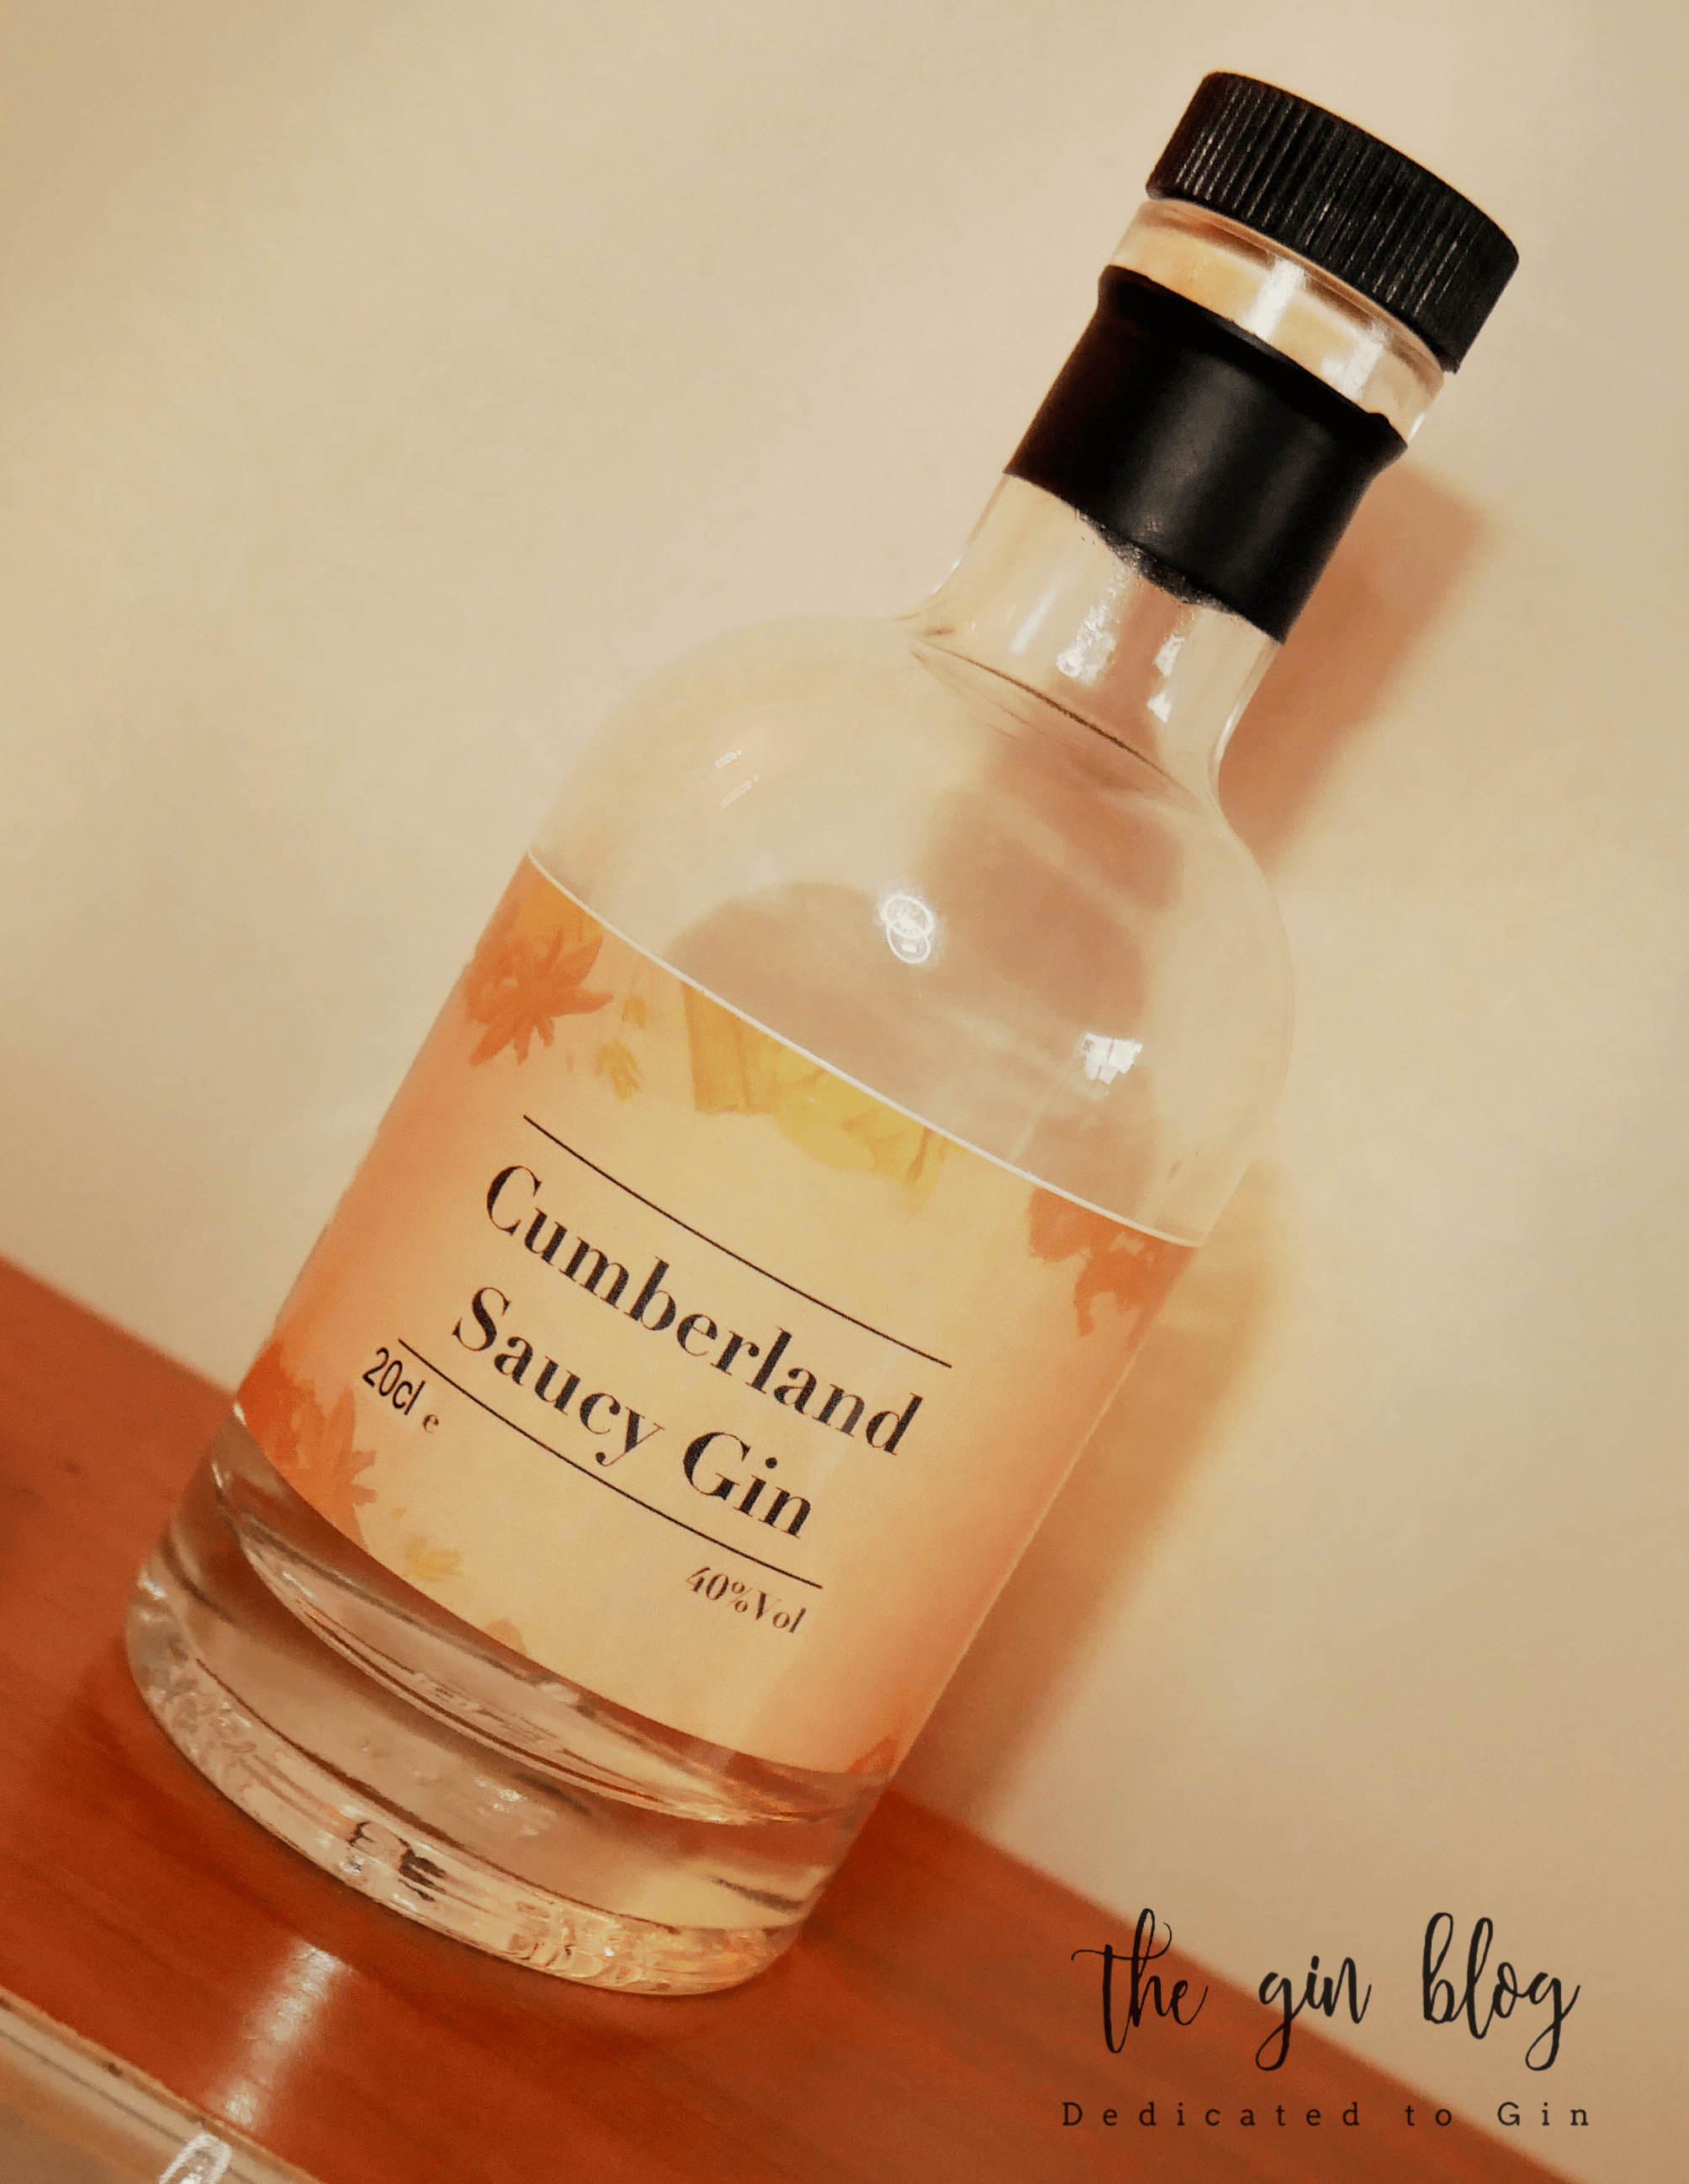 Cumberland Saucy Gin – fruity sauce meets piney juniper